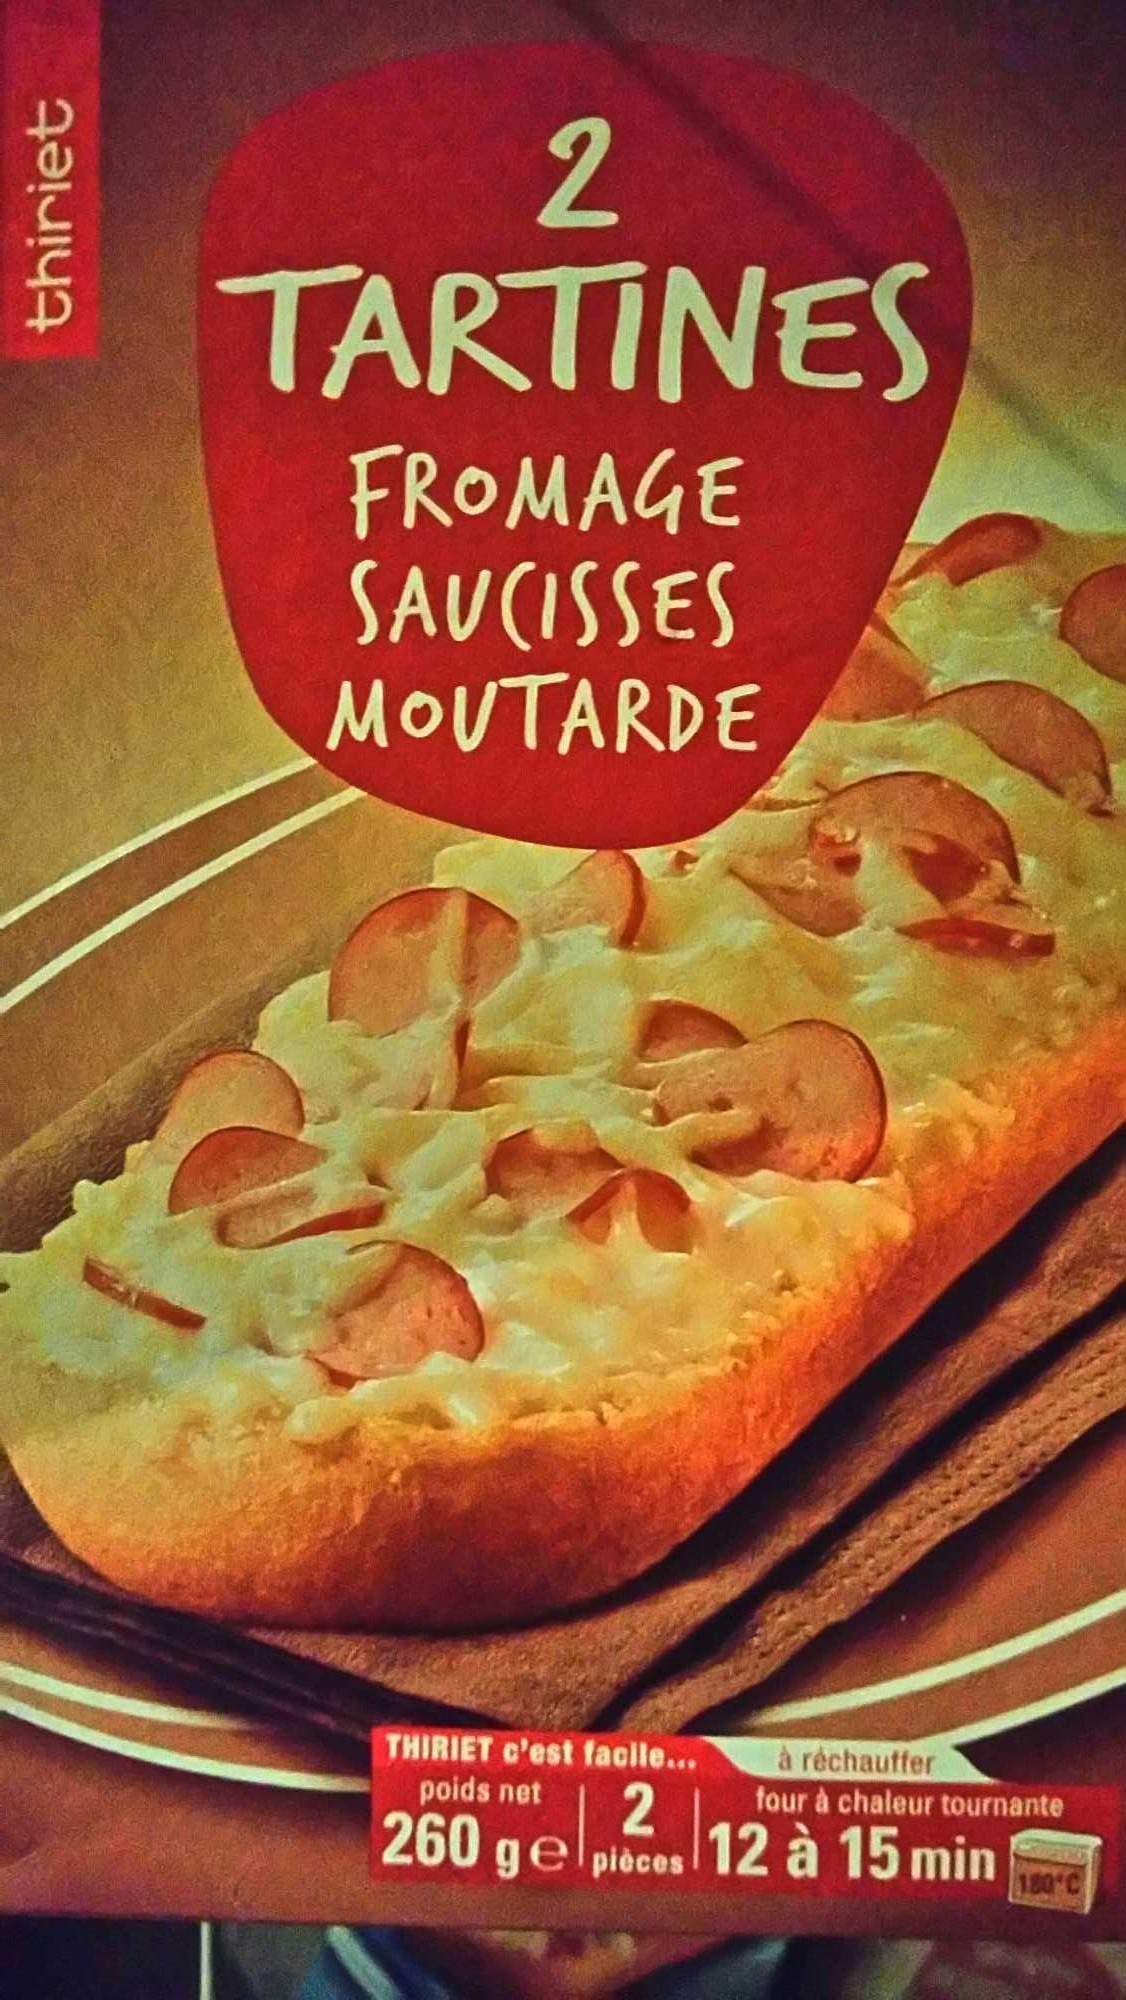 2 Tartines Fromage Saucisses Moutarde - Product